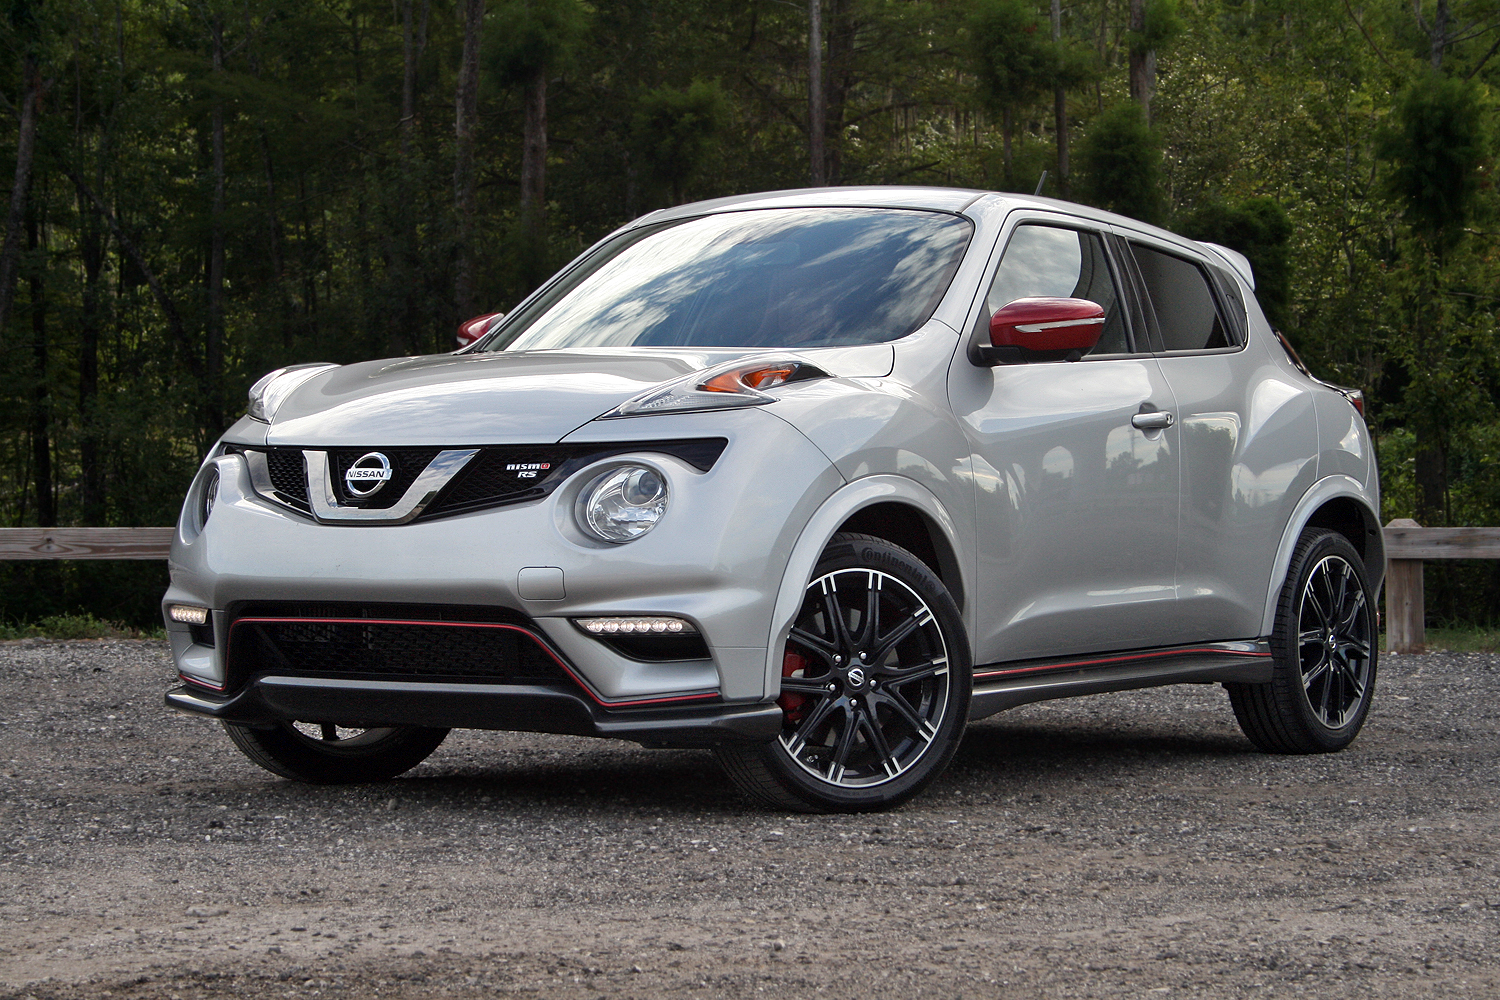 2015 nissan juke nismo rs driven gallery 641703 top speed. Black Bedroom Furniture Sets. Home Design Ideas